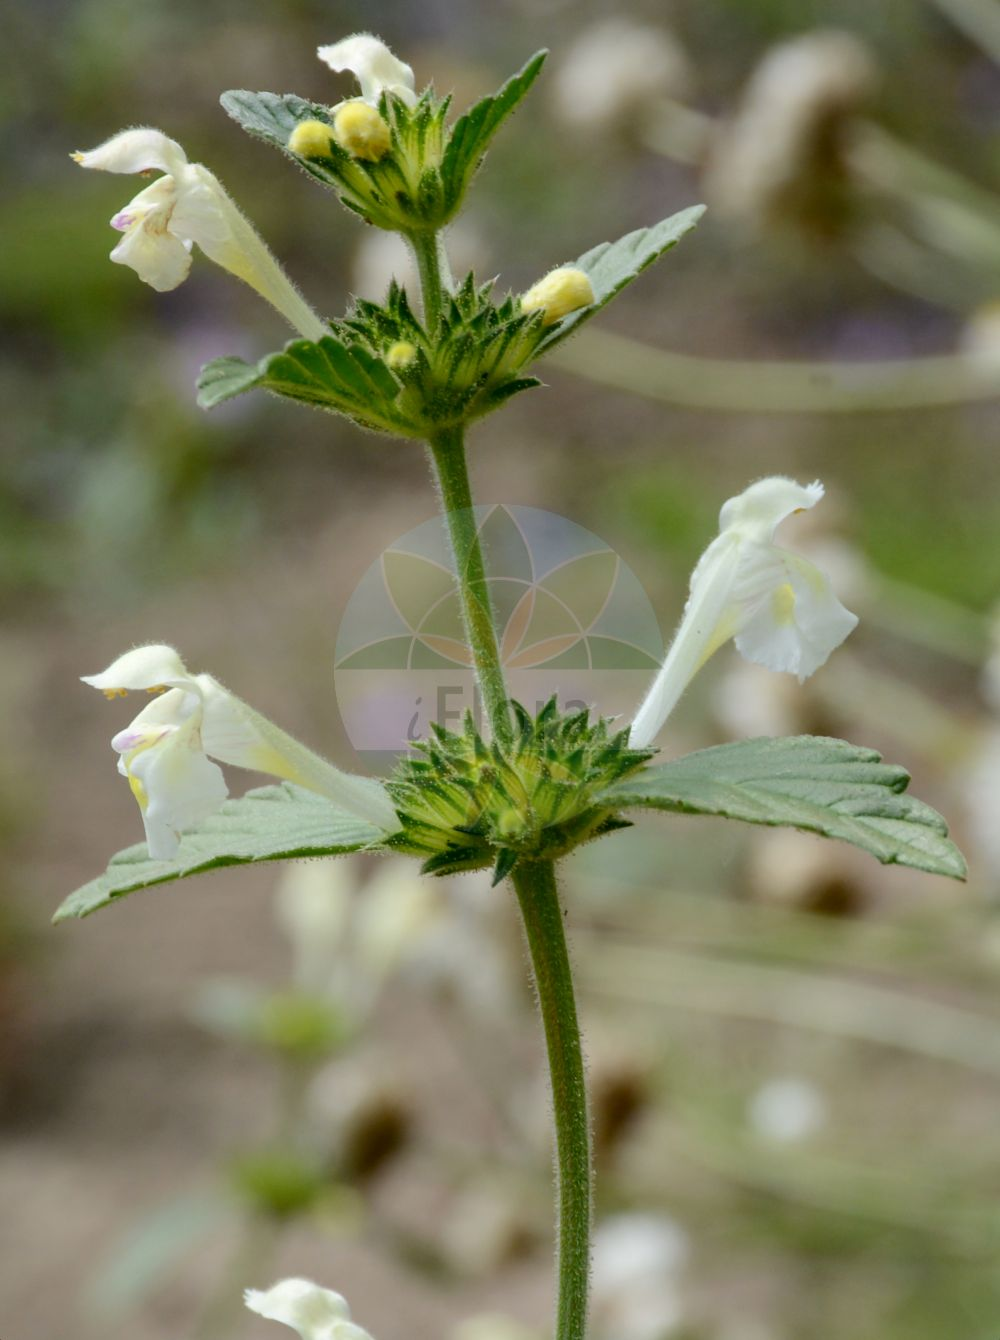 Foto von Galeopsis segetum (Gelber Hohlzahn - Downy Hemp-nettle). Das Bild zeigt Blatt und Bluete. Das Foto wurde in Berlin, Deutschland aufgenommen. ---- Photo of Galeopsis segetum (Gelber Hohlzahn - Downy Hemp-nettle).The image is showing leaf and flower.The picture was taken in Berlin, Germany.(Galeopsis segetum,Gelber Hohlzahn,Downy Hemp-nettle,Dalanum segetum,Galeopsis dubia,Galeopsis elegans,Galeopsis grandiflora,Galeopsis ochroleuca,Galeopsis villosa,Ladanella segetum,Ladanum dubium,Ladanum luteum,Ladanum ochroleucum,Tetrahit longiflorum,Saat-Hohlzahn,Yellow Hemp-nettle,Galeopsis,Hohlzahn,Hempnettle,Lamiaceae,Lippenbluetengewaechse;Lippenbluetler,Nettle family,Blatt,Bluete,leaf,flower)